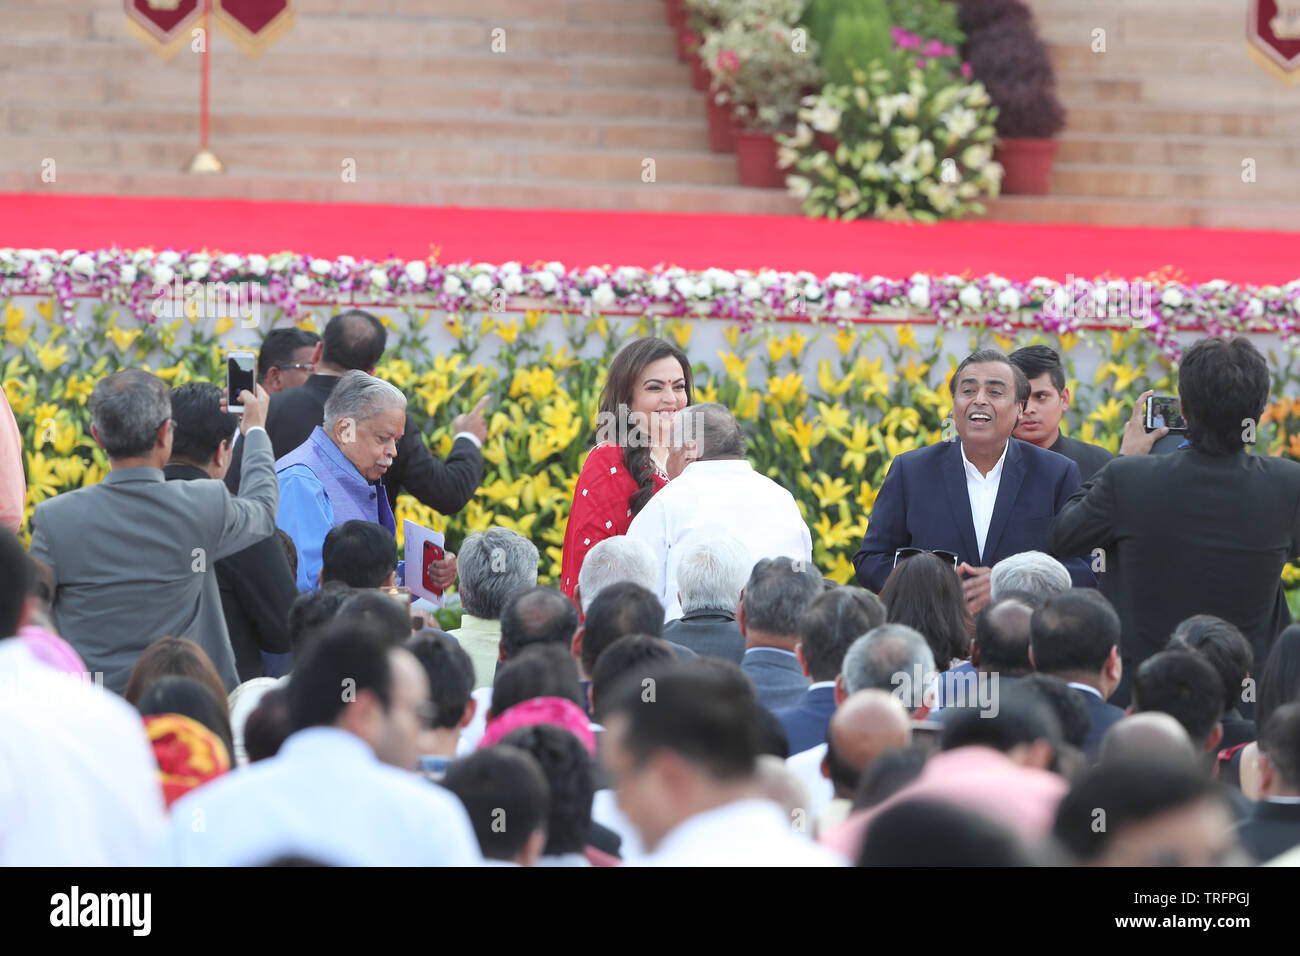 Delhi, India, 30th May 2019Rastrapathi Bhavan, India. Swearing in ceremony of Shri Narendra Modi on 30.05.2019. Among those in attendance for PM's swe - Stock Image